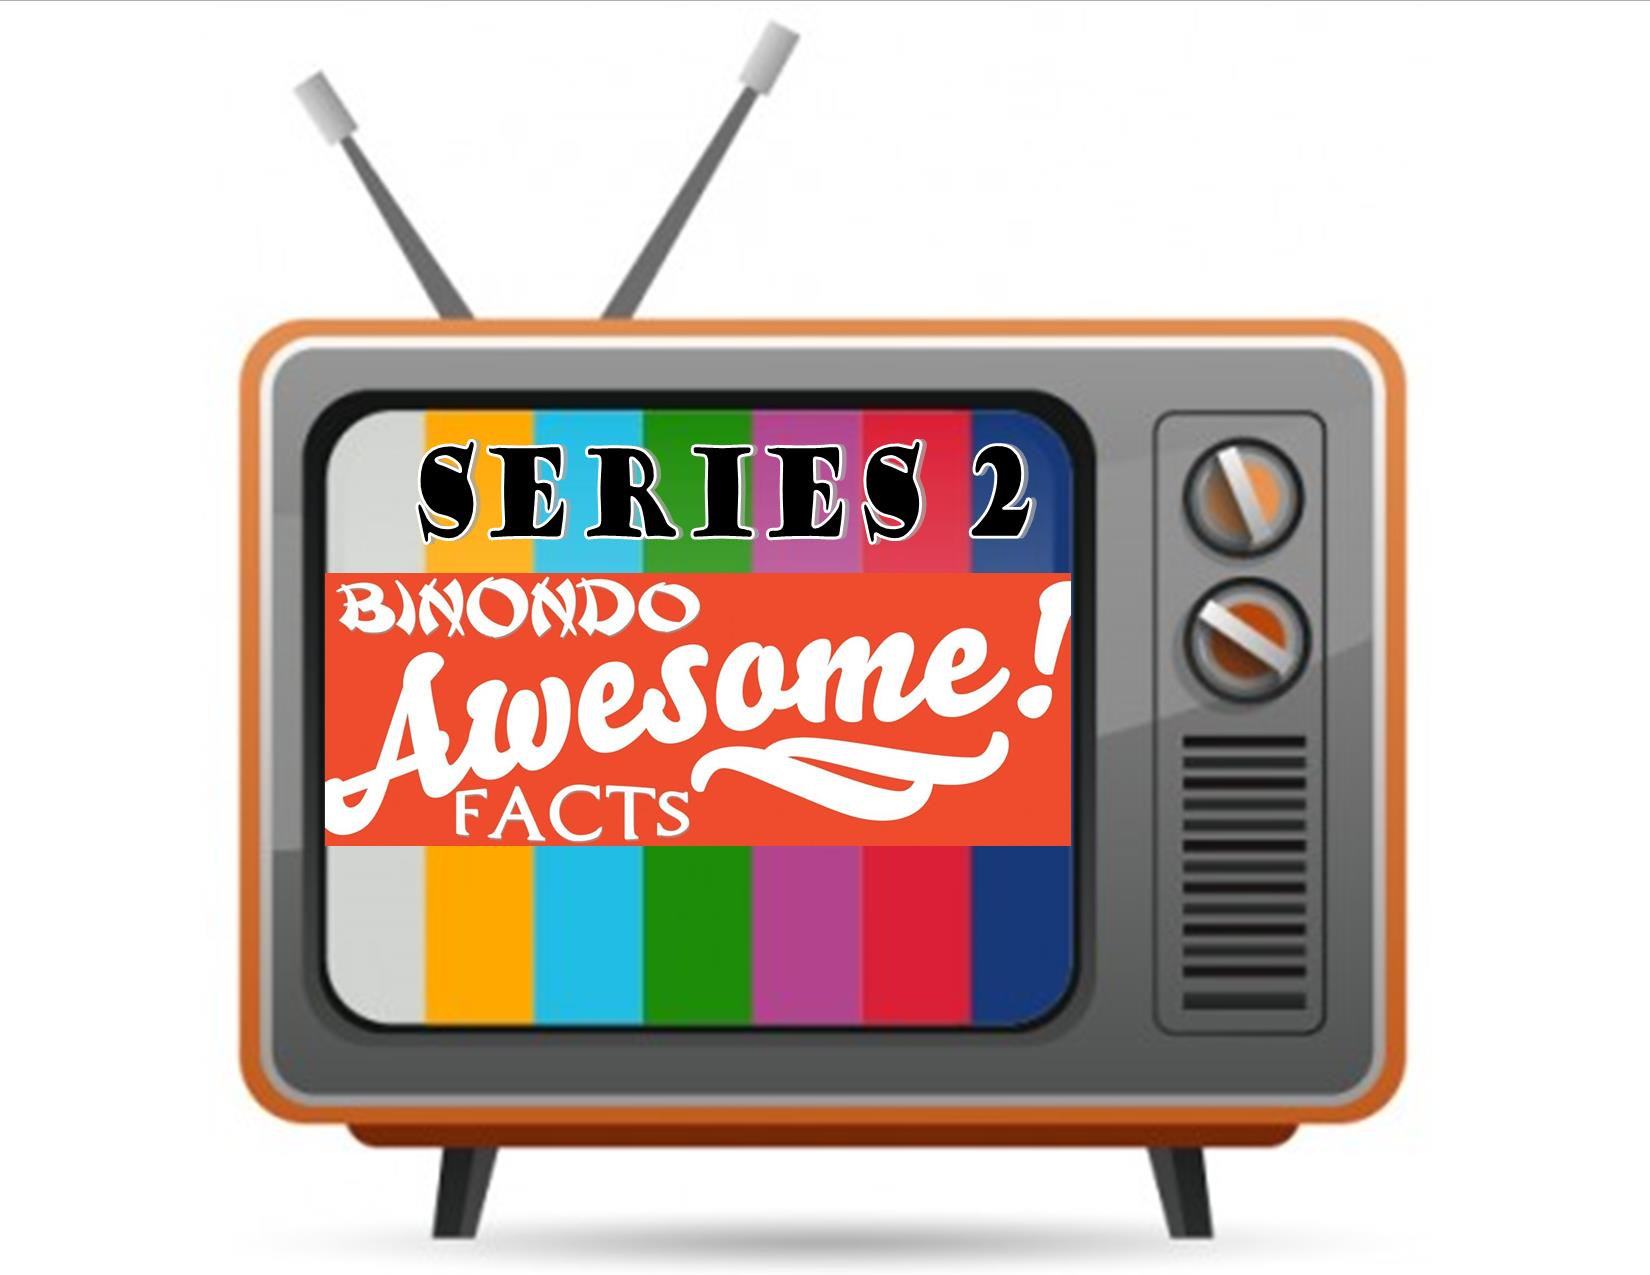 Series 2 of Binondo Awesome Facts – What's Near Binondo